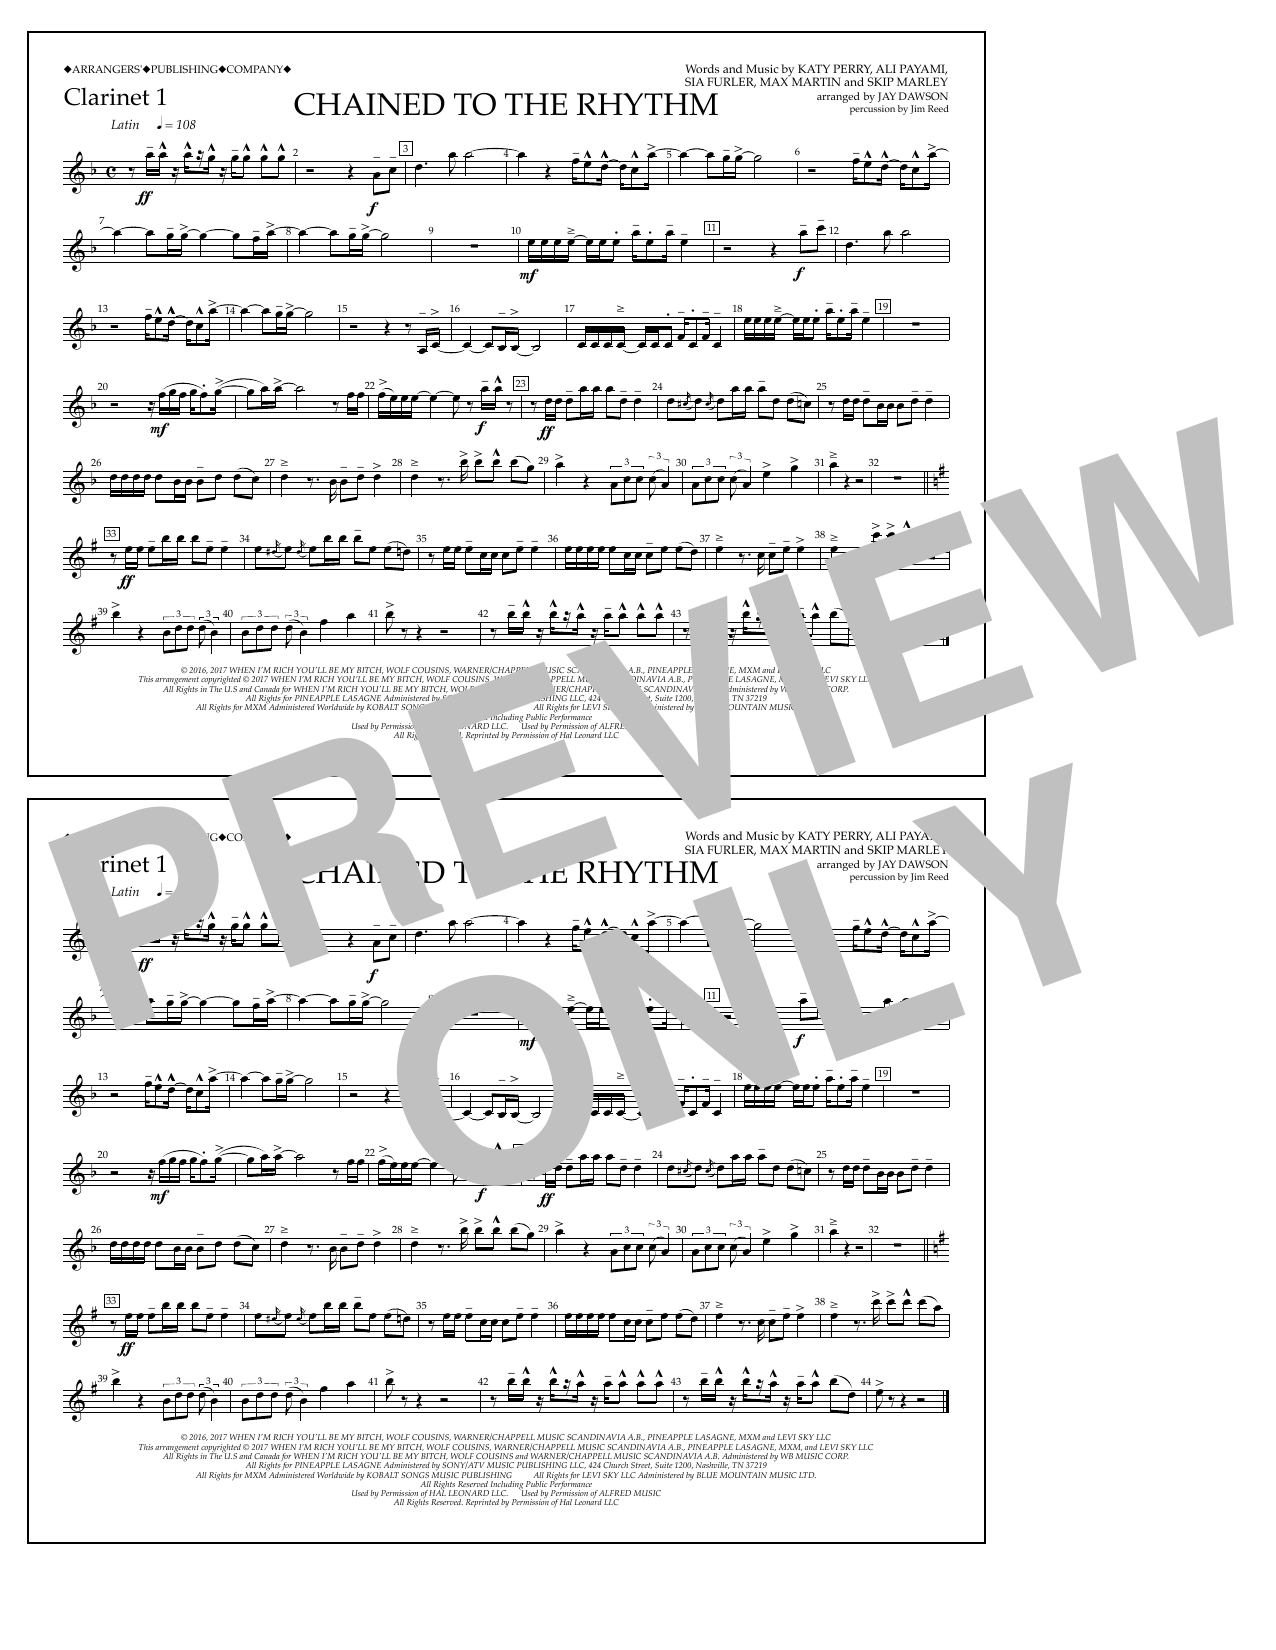 Chained to the Rhythm - Clarinet 1 Sheet Music